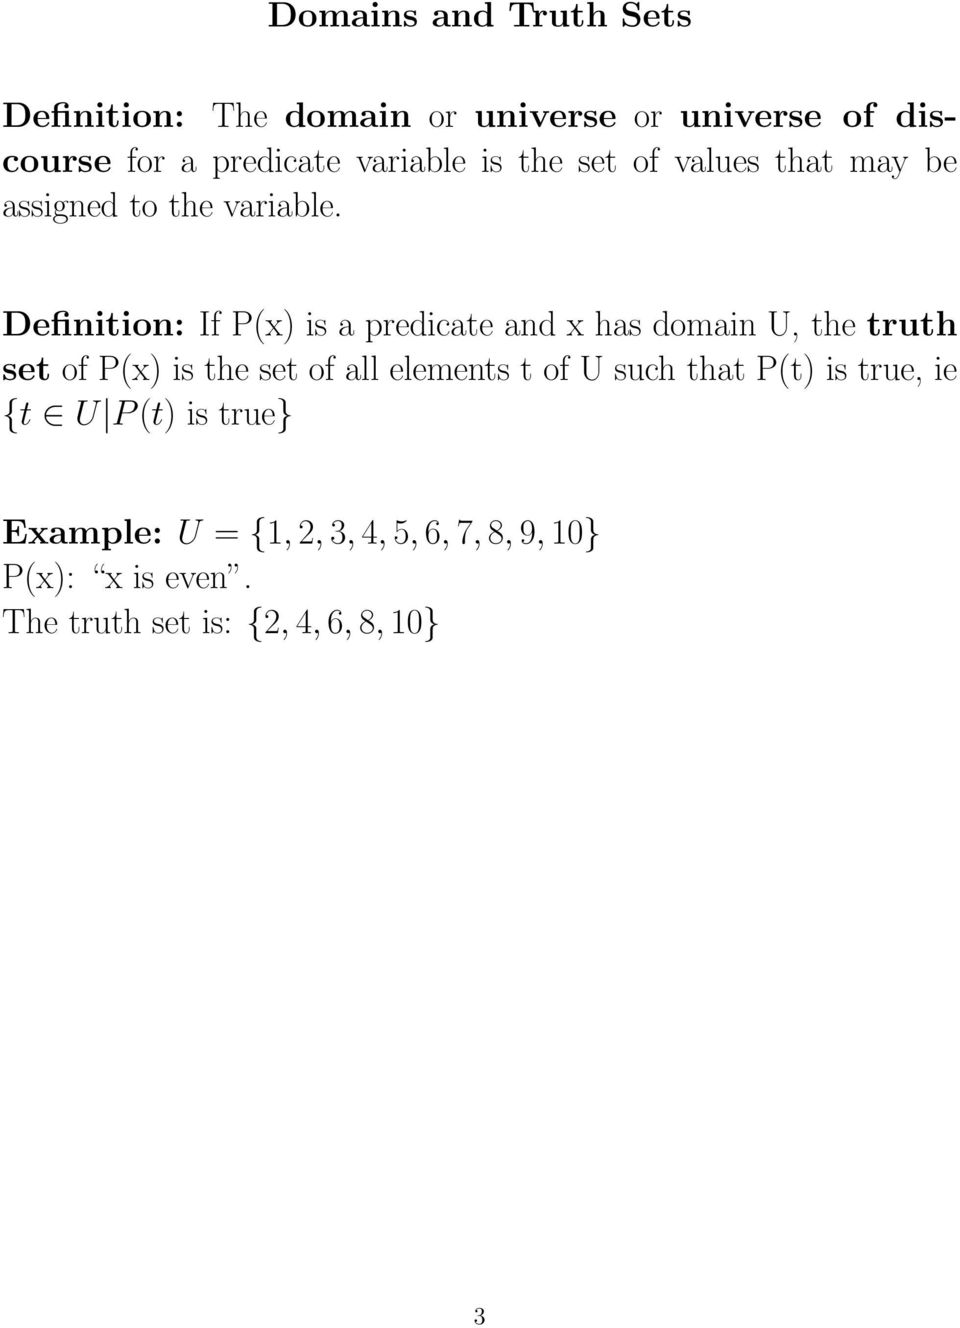 Definition: If P(x) is a predicate and x has domain U, the truth set of P(x) is the set of all elements t